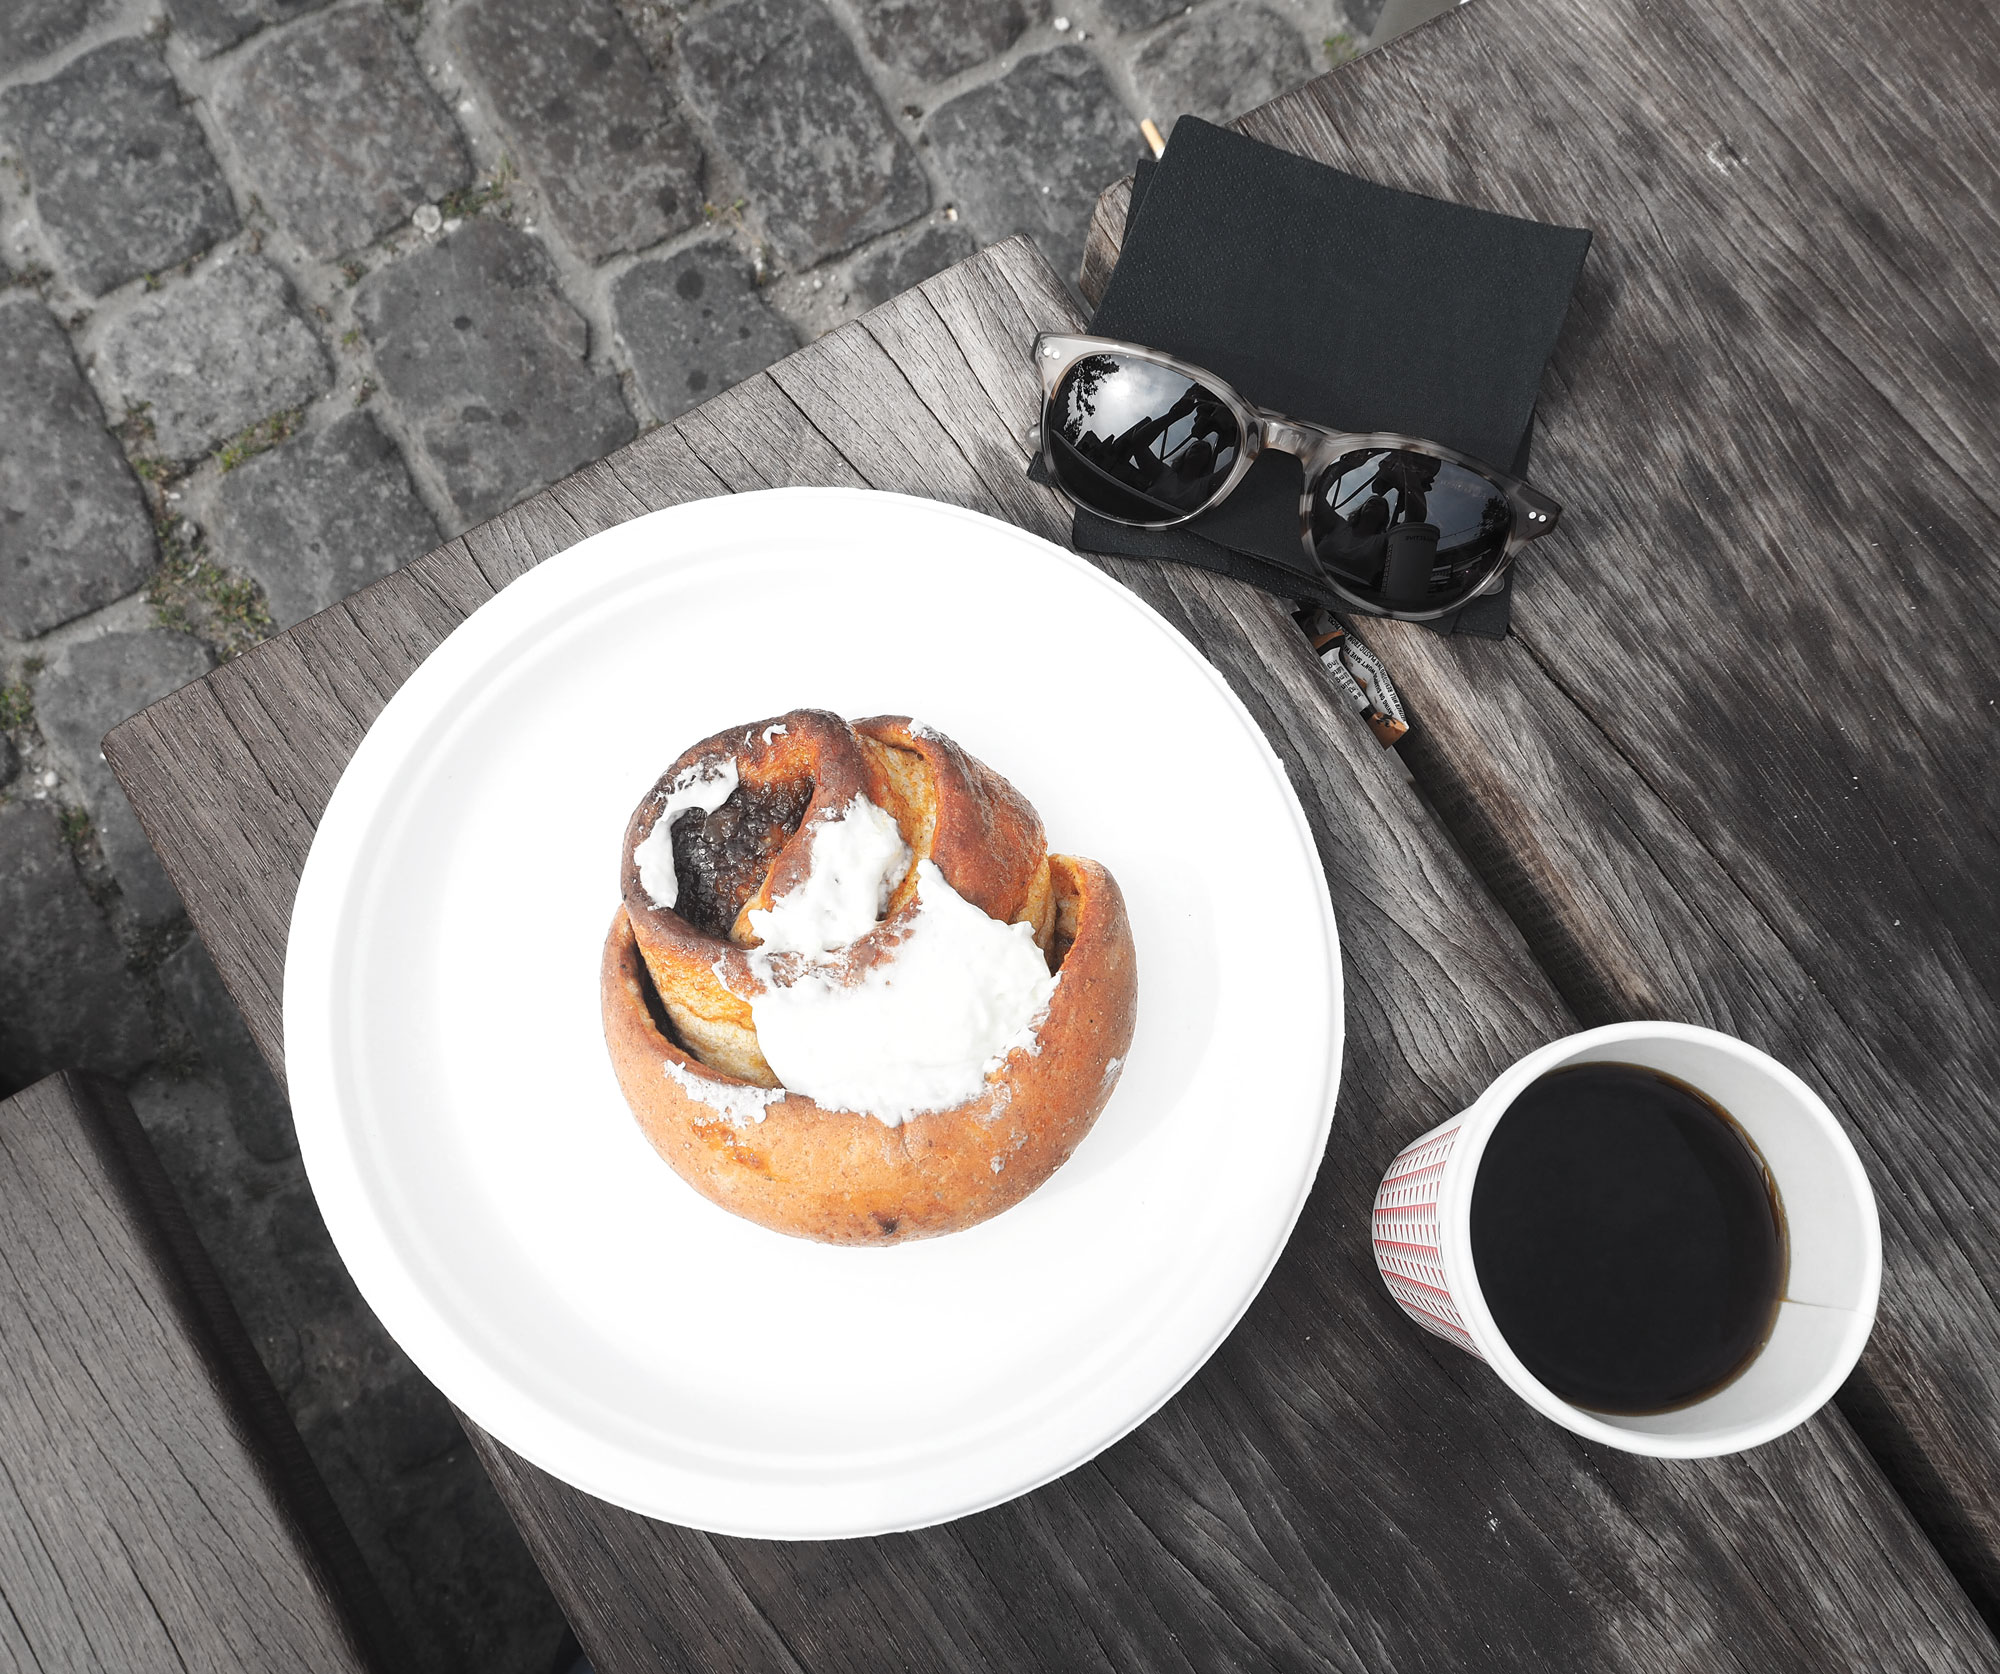 Danish Coffee and Cinnamon bun